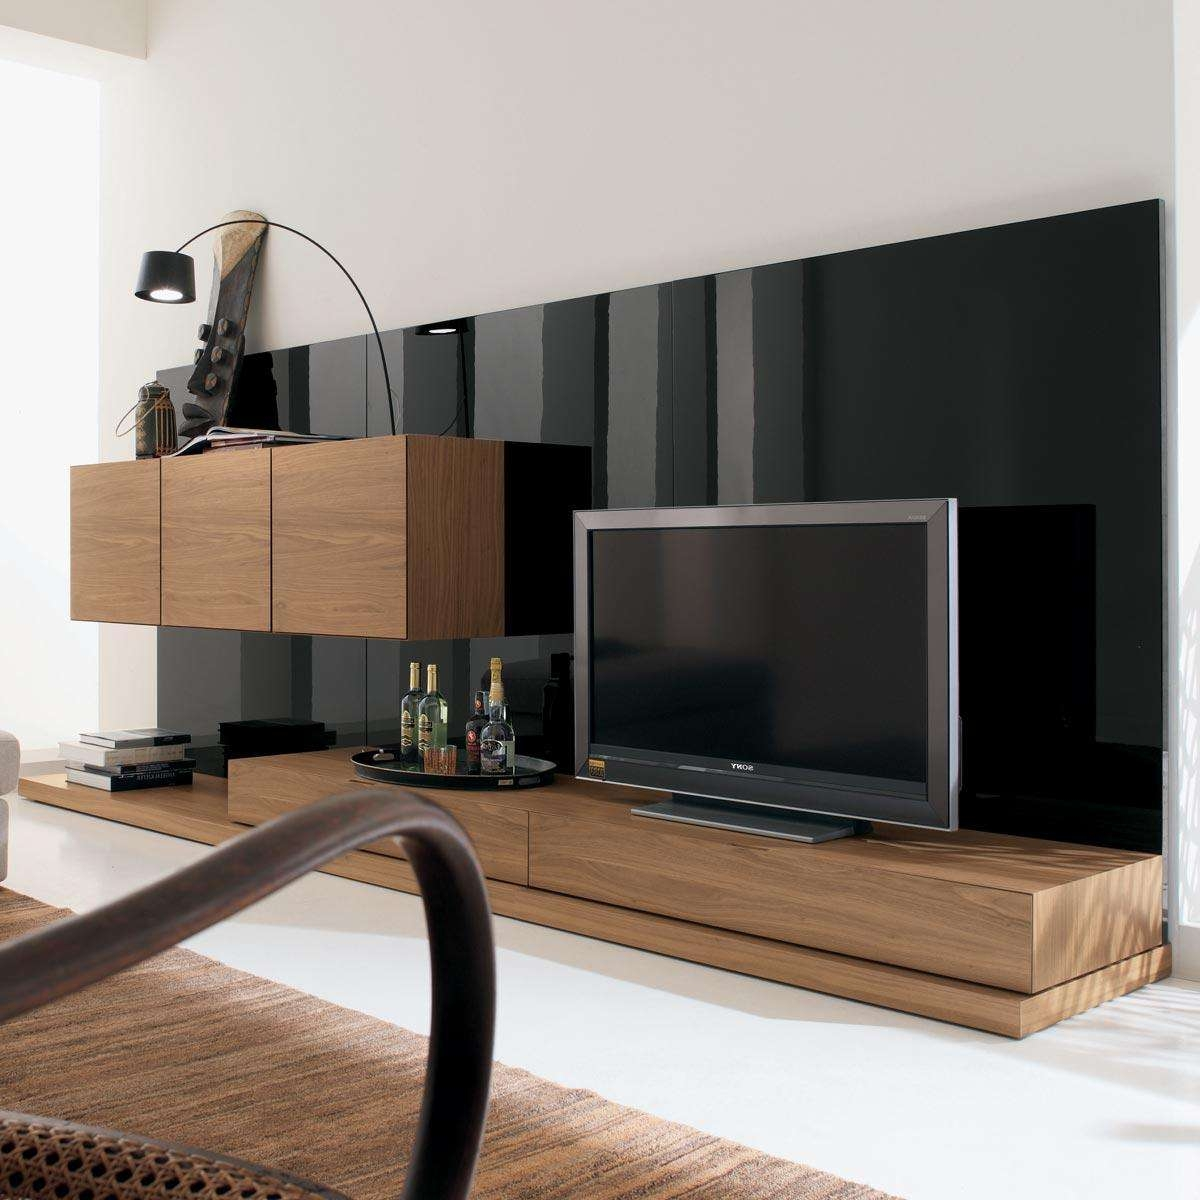 Solid Wood Tv Stand Also Long Tv Stand And Black Wall Living Room With Modern Wooden Tv Stands (View 10 of 15)